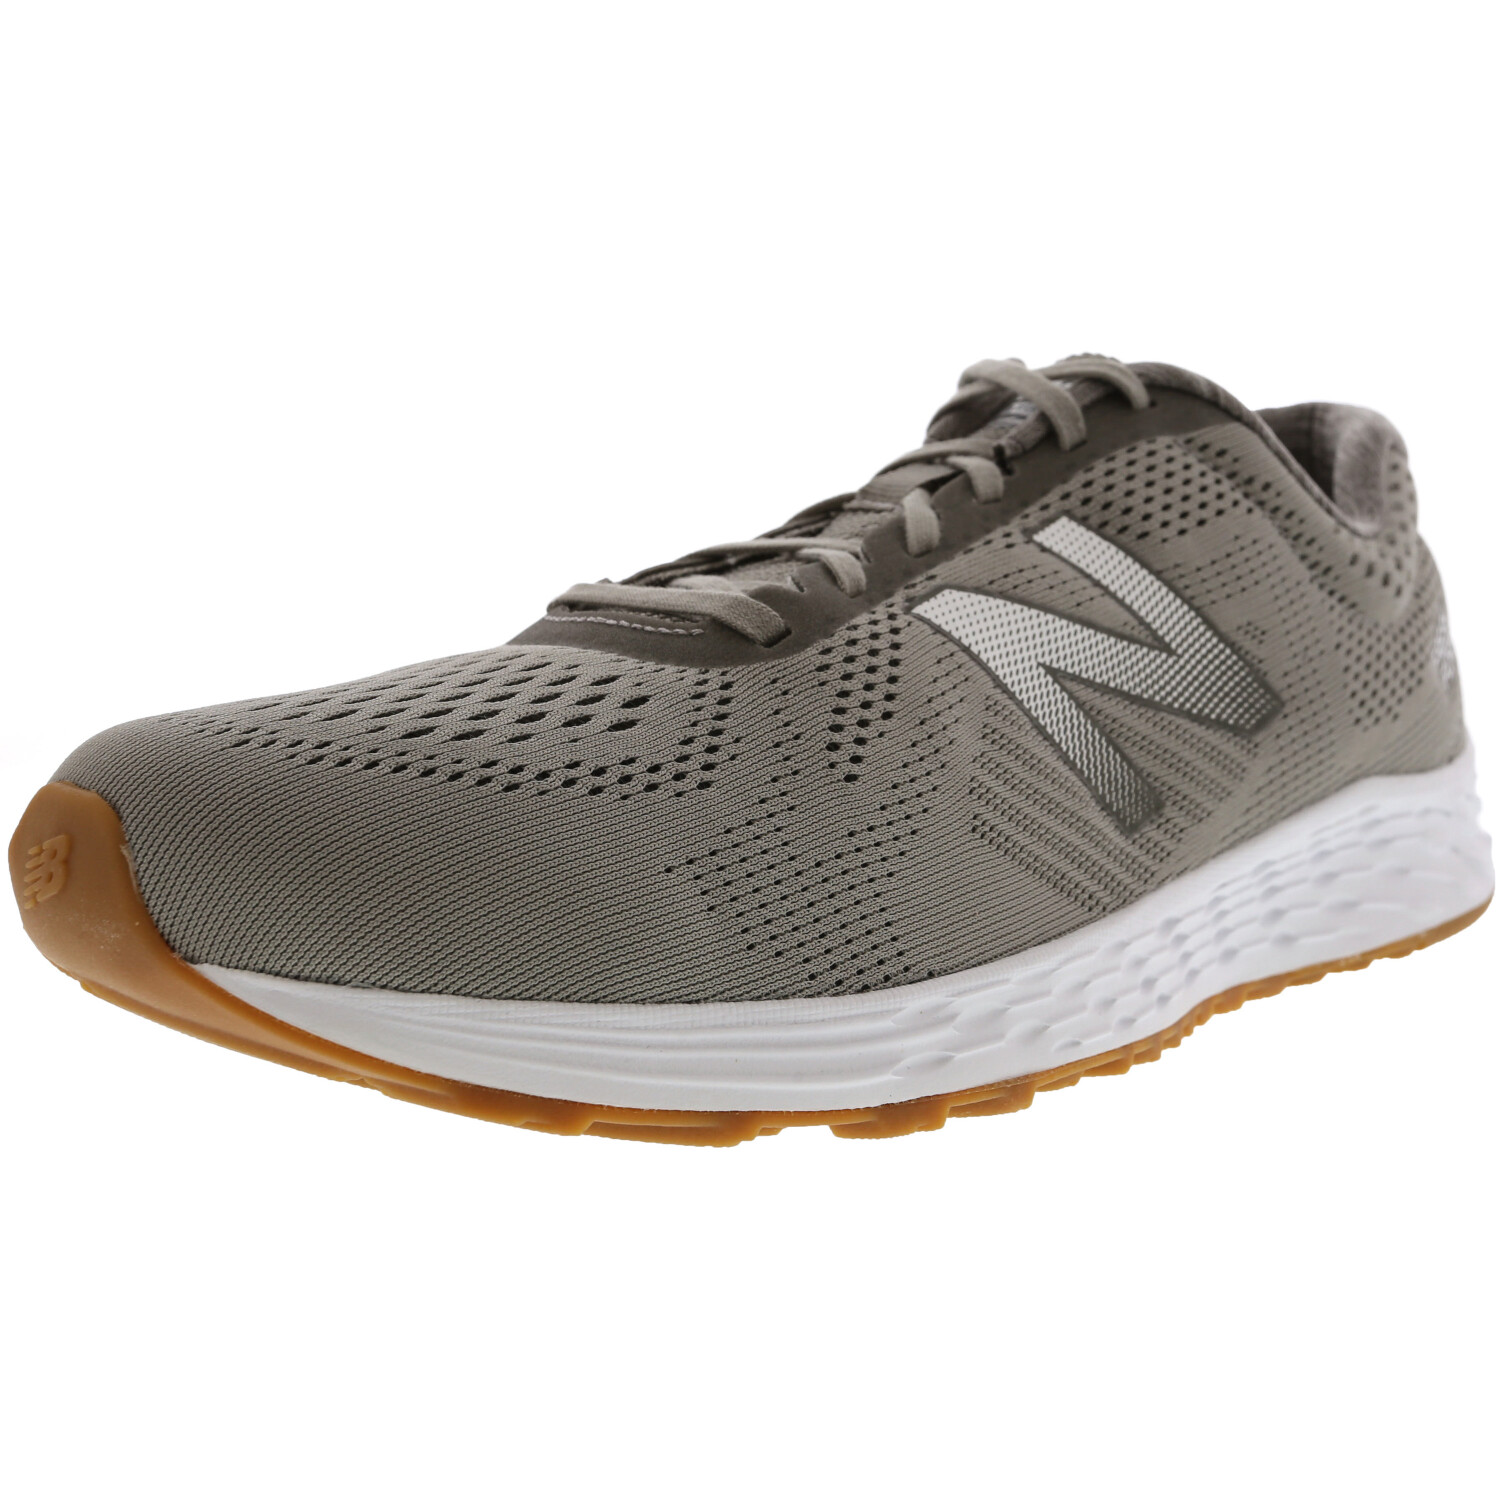 New Balance Maris Running Shoe - 7WW - Cs1